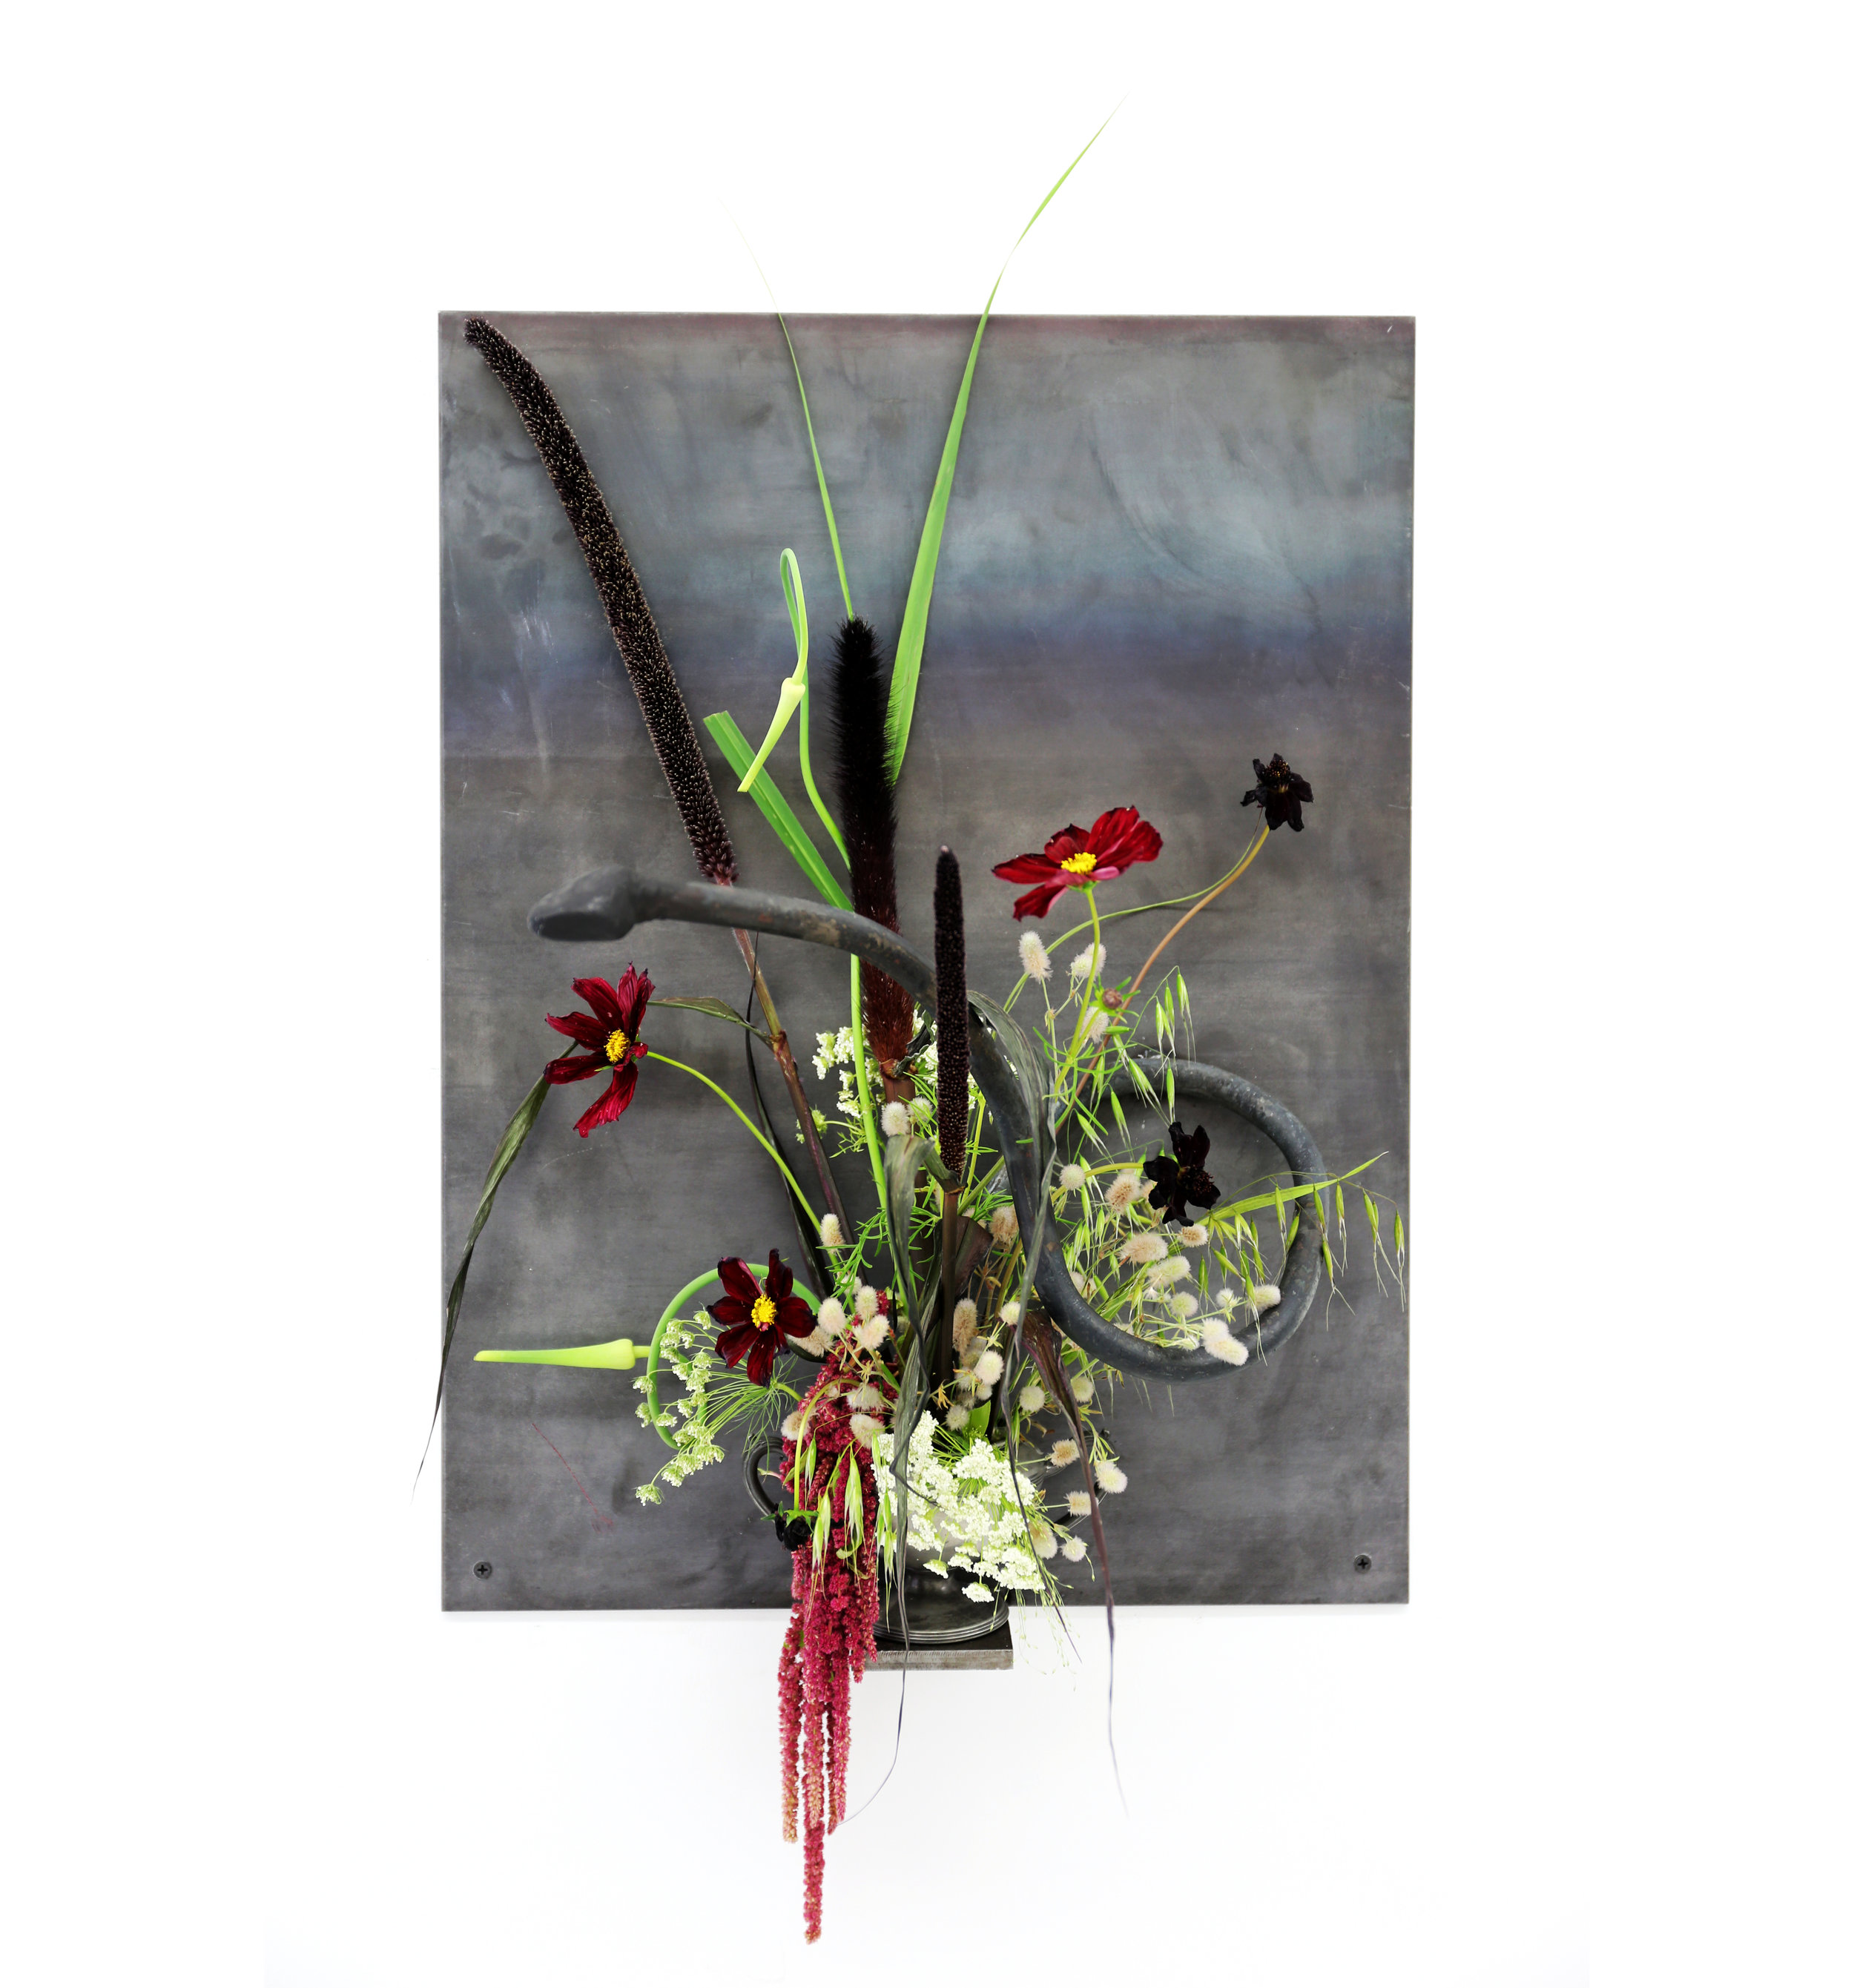 """Speaking in Tongues, in collaboration with Micah Rosenblatt and Alex Crowder 18""""x24"""", Cold Rolled torch bent solid steel, hot rolled 1/4"""" steel plate, Chocolate Scabiosa, Queen Anne's Lace, Sea oat Grass, Amaranthus, Snake Alium Onion, Cat Tail, family heirloom vessel"""